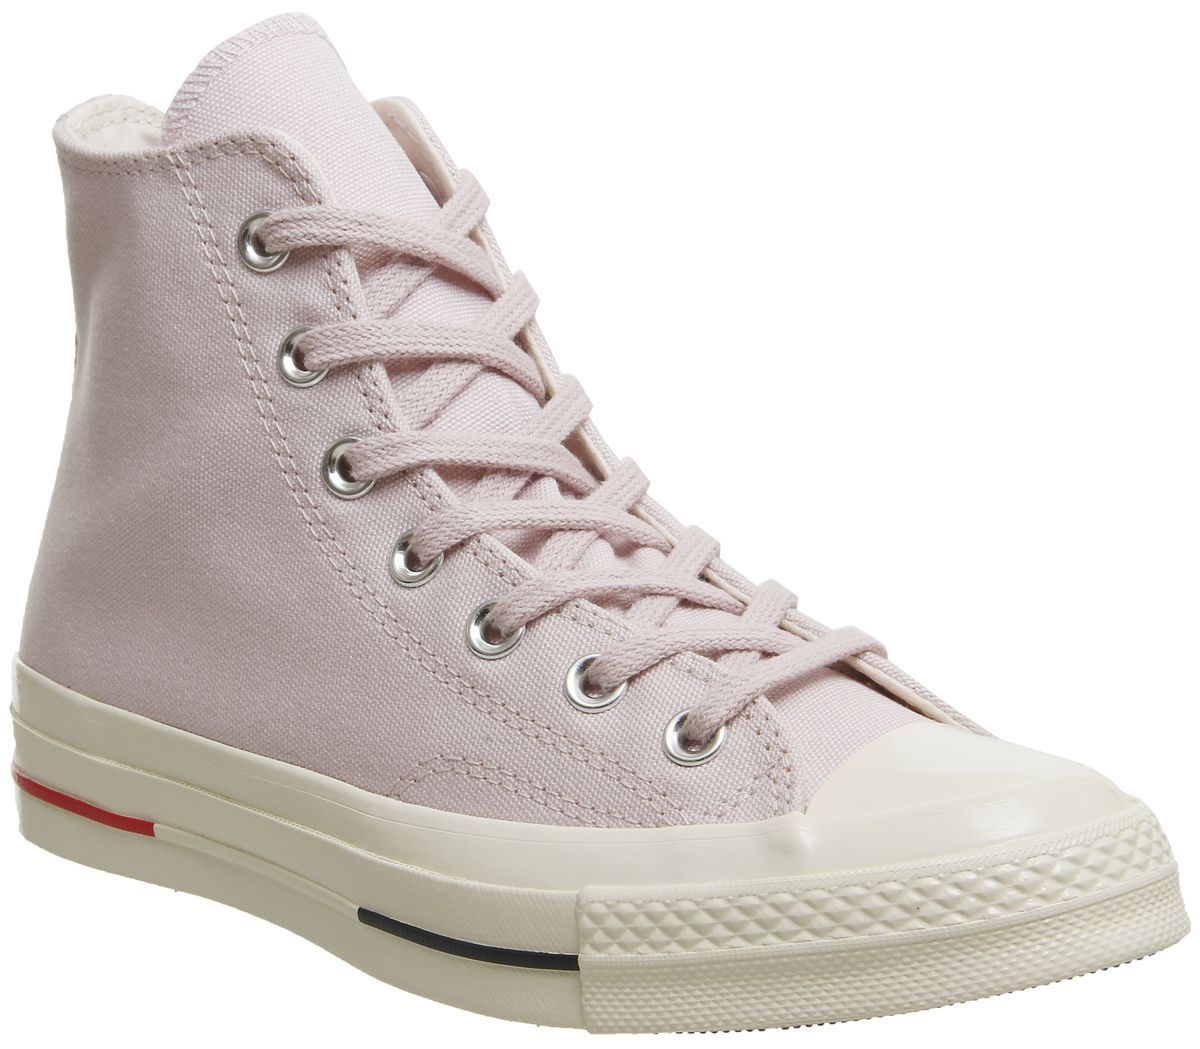 120ee3866d0a Converse All Star Hi 70 s Barely Rose Gym Red - Hers trainers